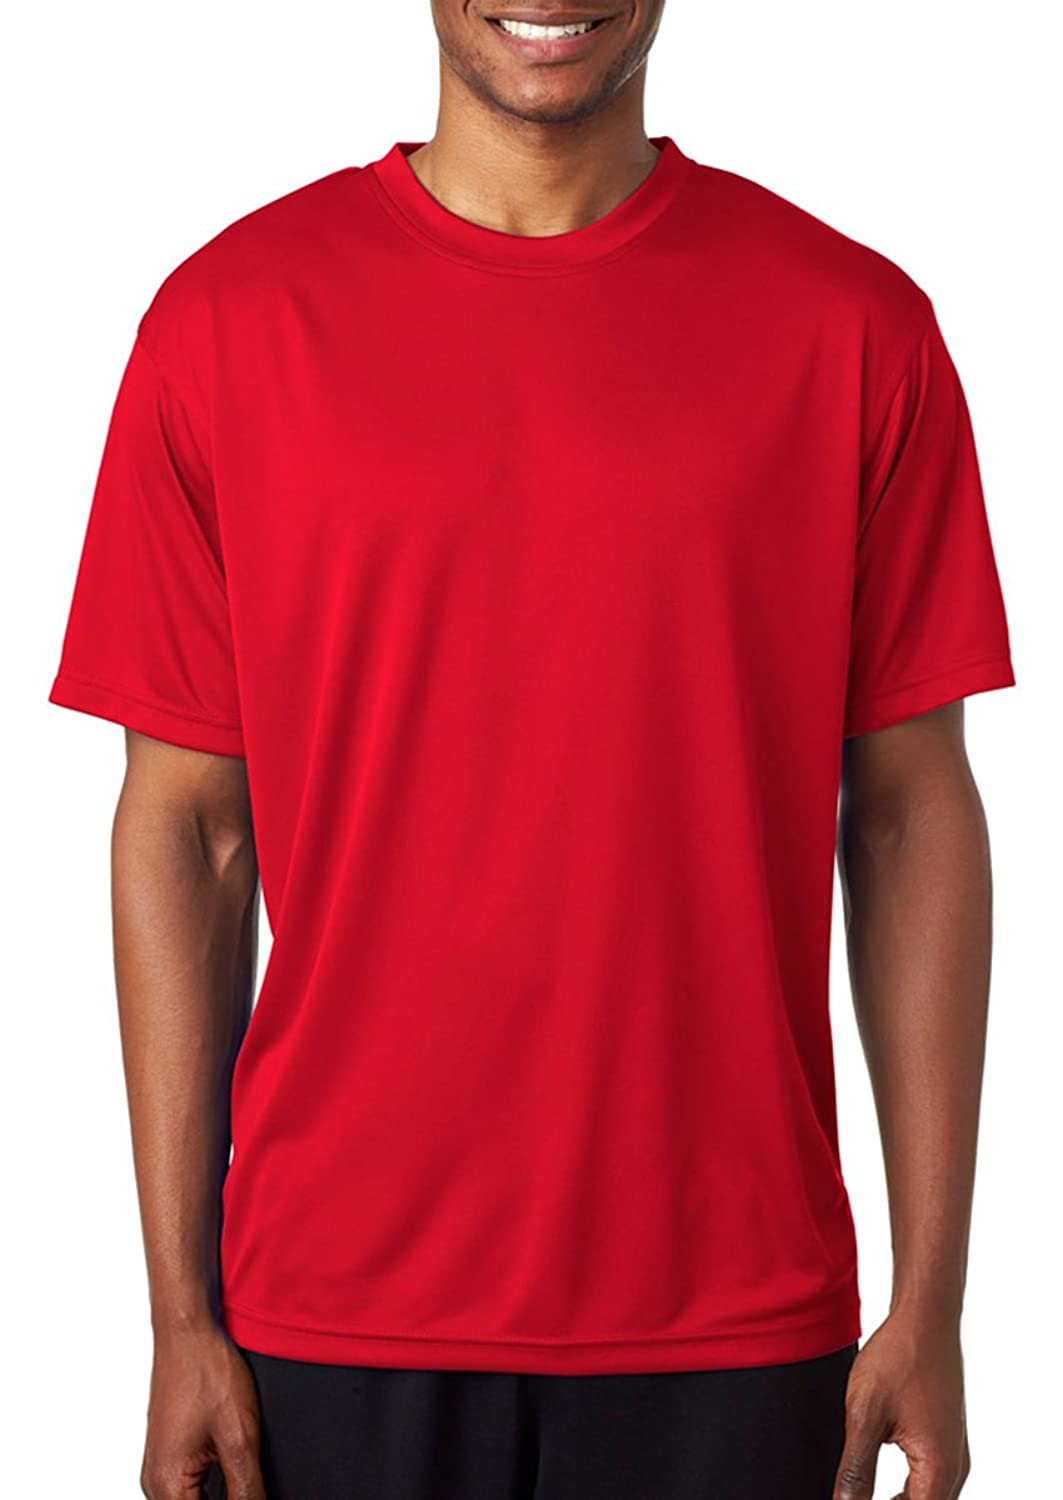 UltraClub Men's Relaxed Fit Crewneck Snag Resistant Wicking T Shirt